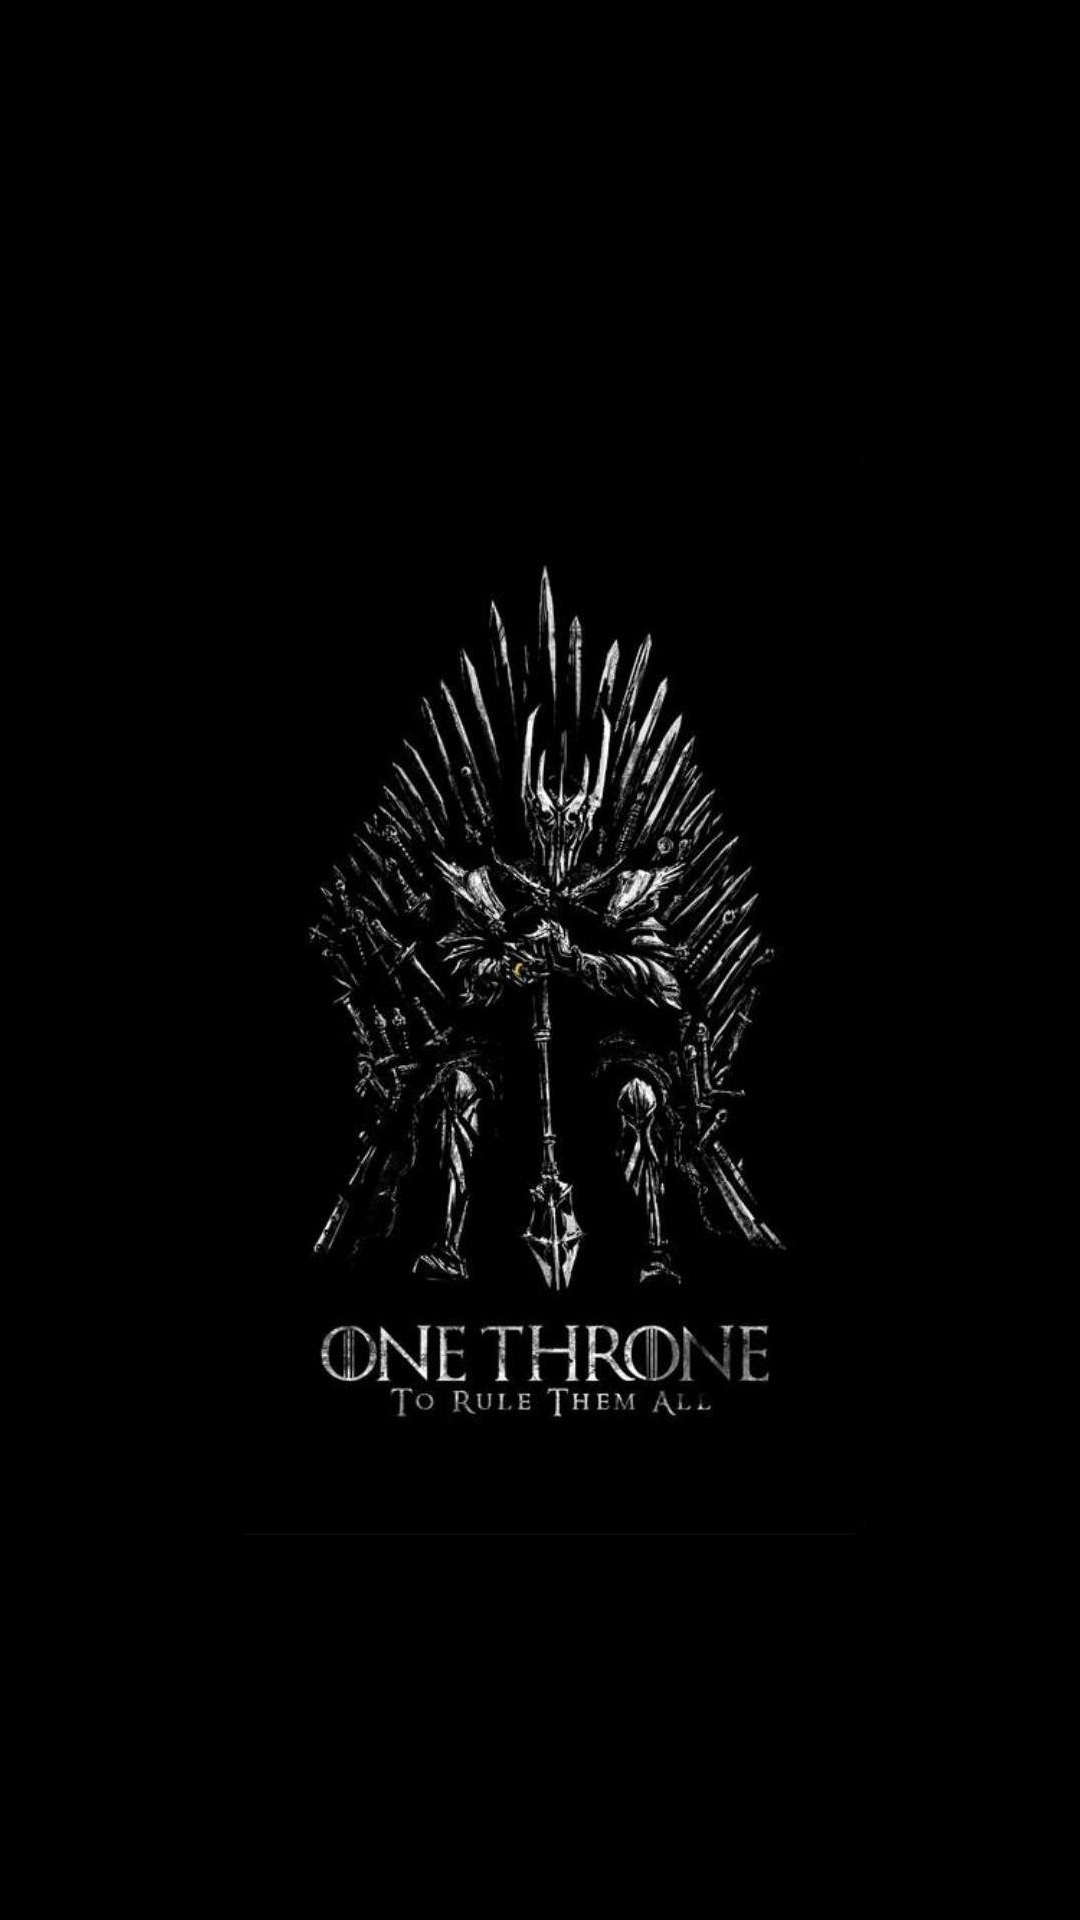 One Throne